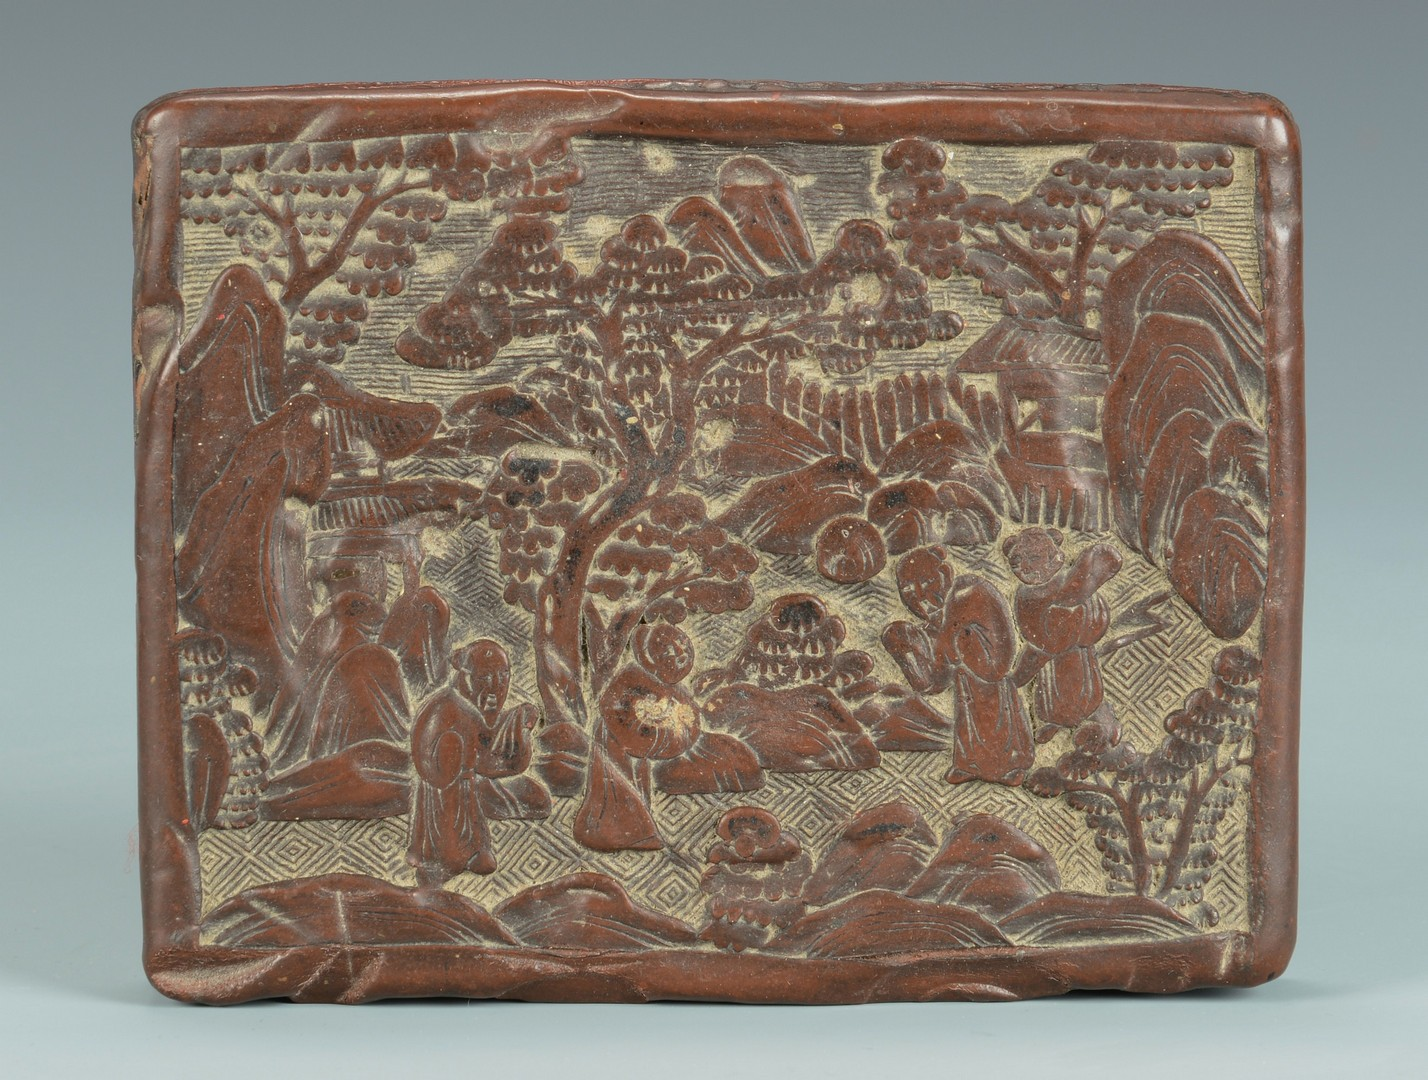 Lot 3383187: Carved Chinese Cinnabar Box